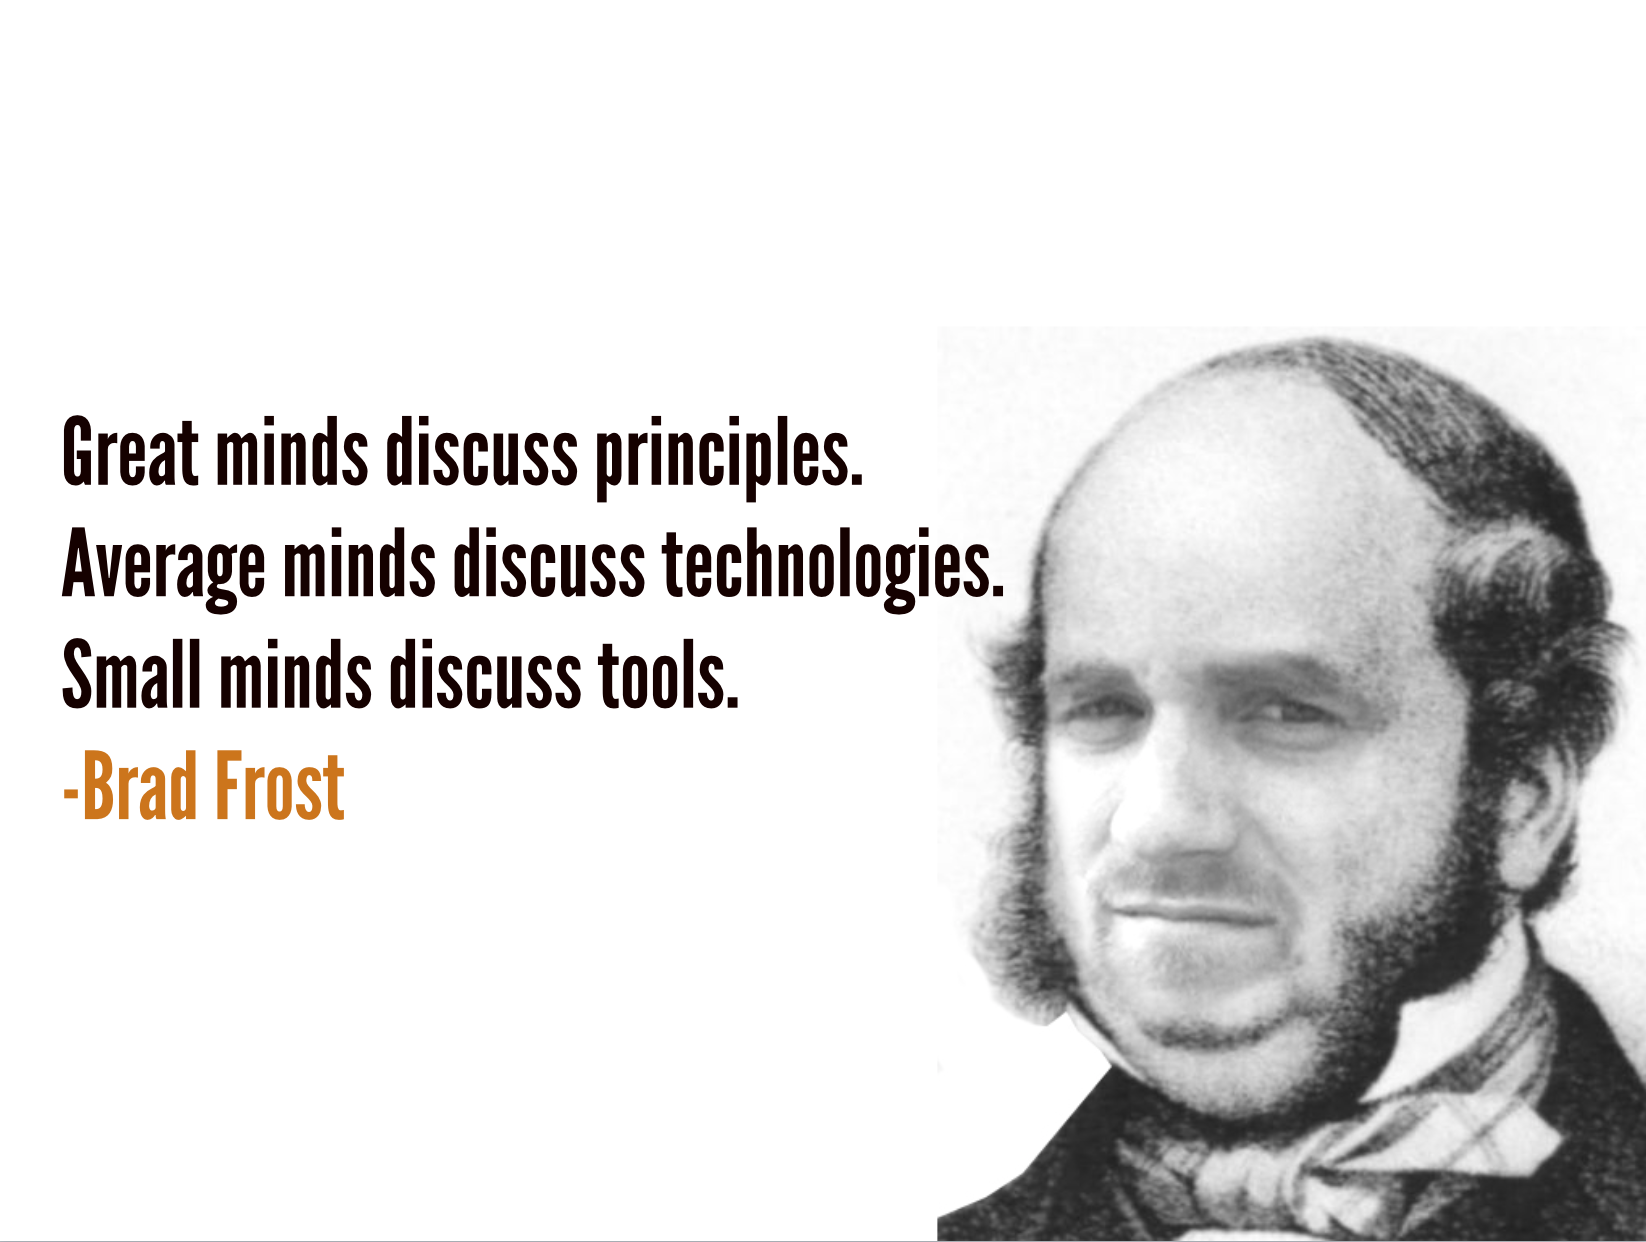 Great minds discuss principles. Average minds discuss technologies. Small minds discuss tools.